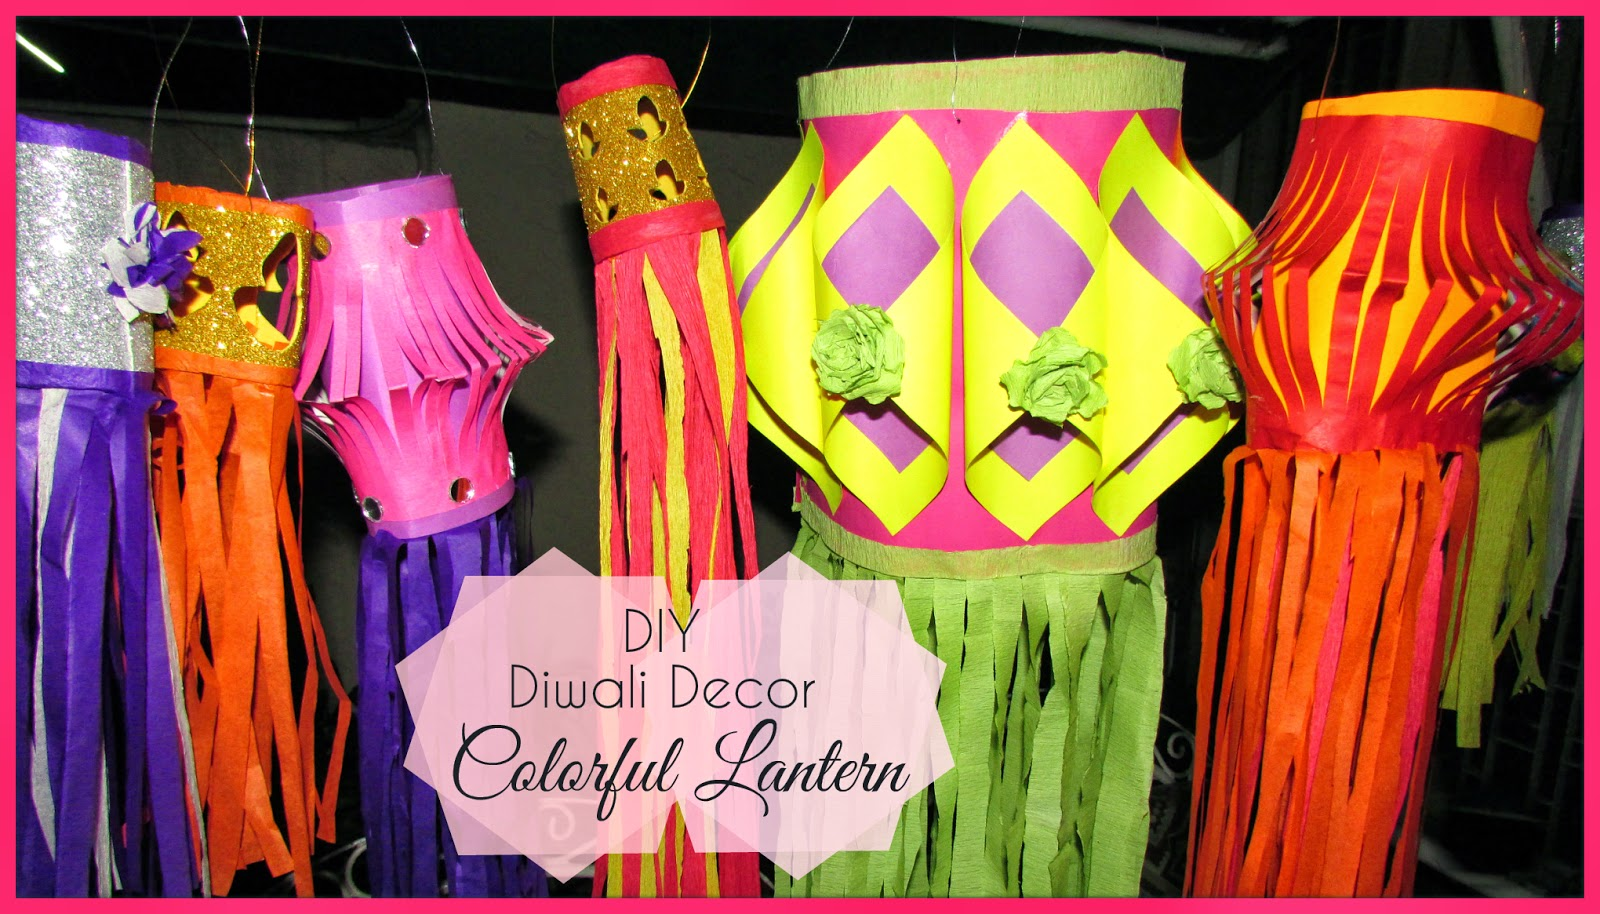 diwali, diwali decor, DIY diwali decor, kandeel, lantern, DIY lantern, DIY kandeel, colorful diwali decor, how to decorate hose for diwali, how to make lanterns, how to make lanterns at home